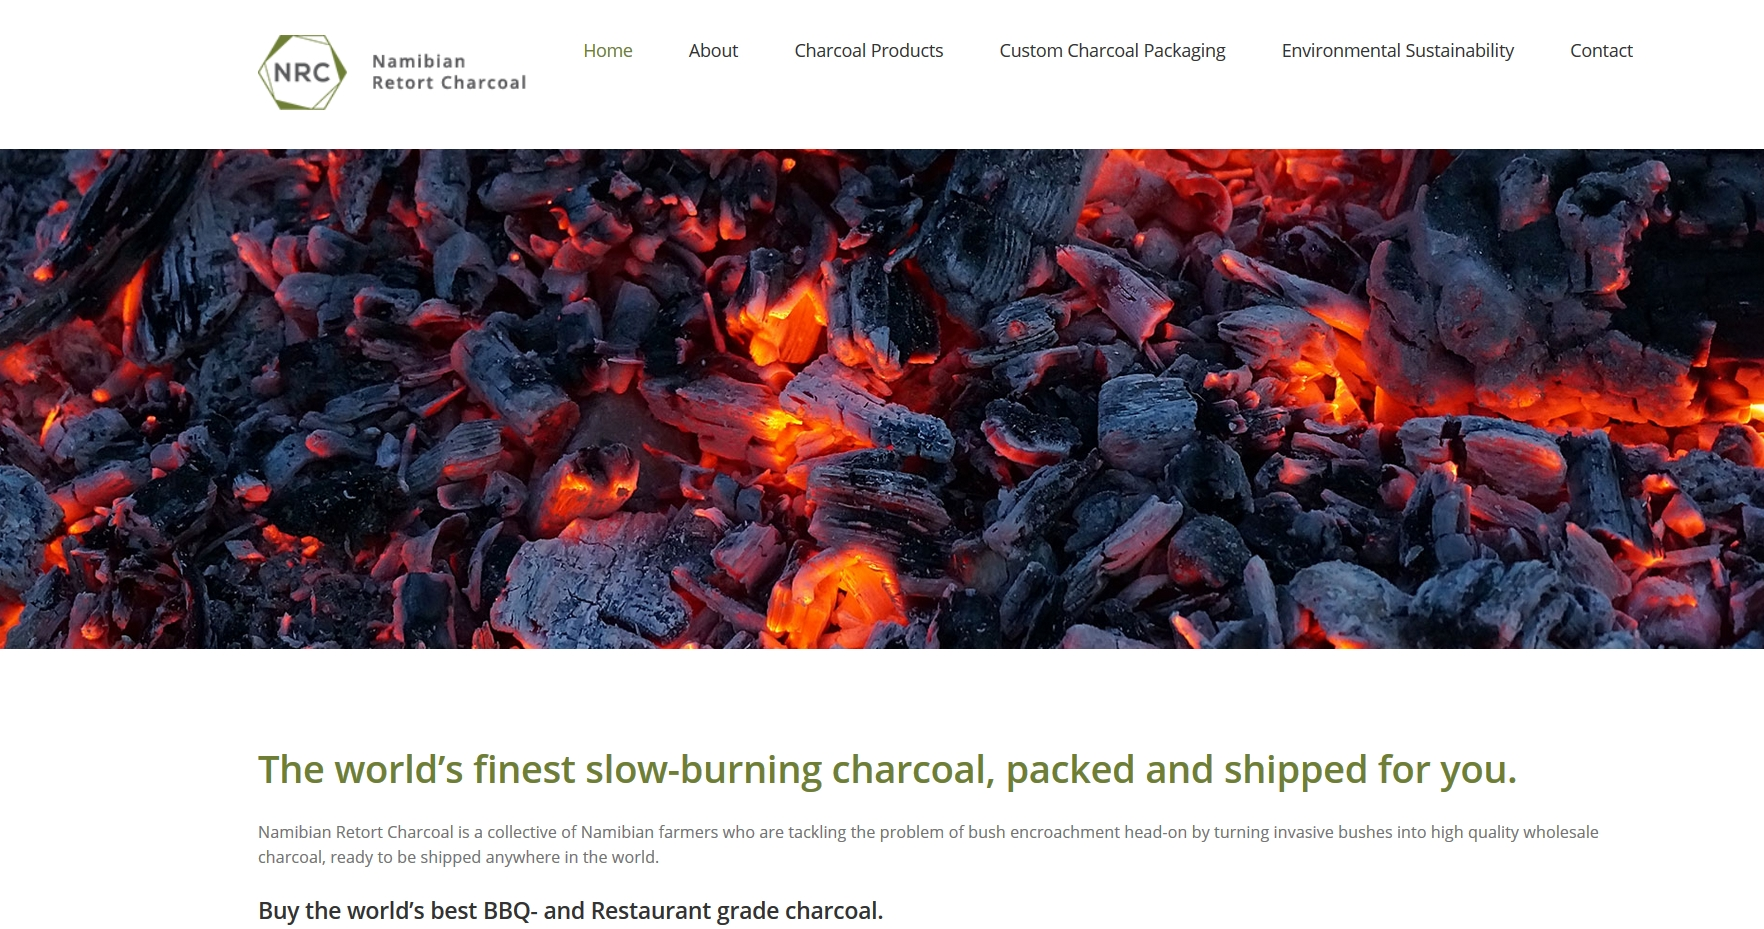 Charcoalpacking